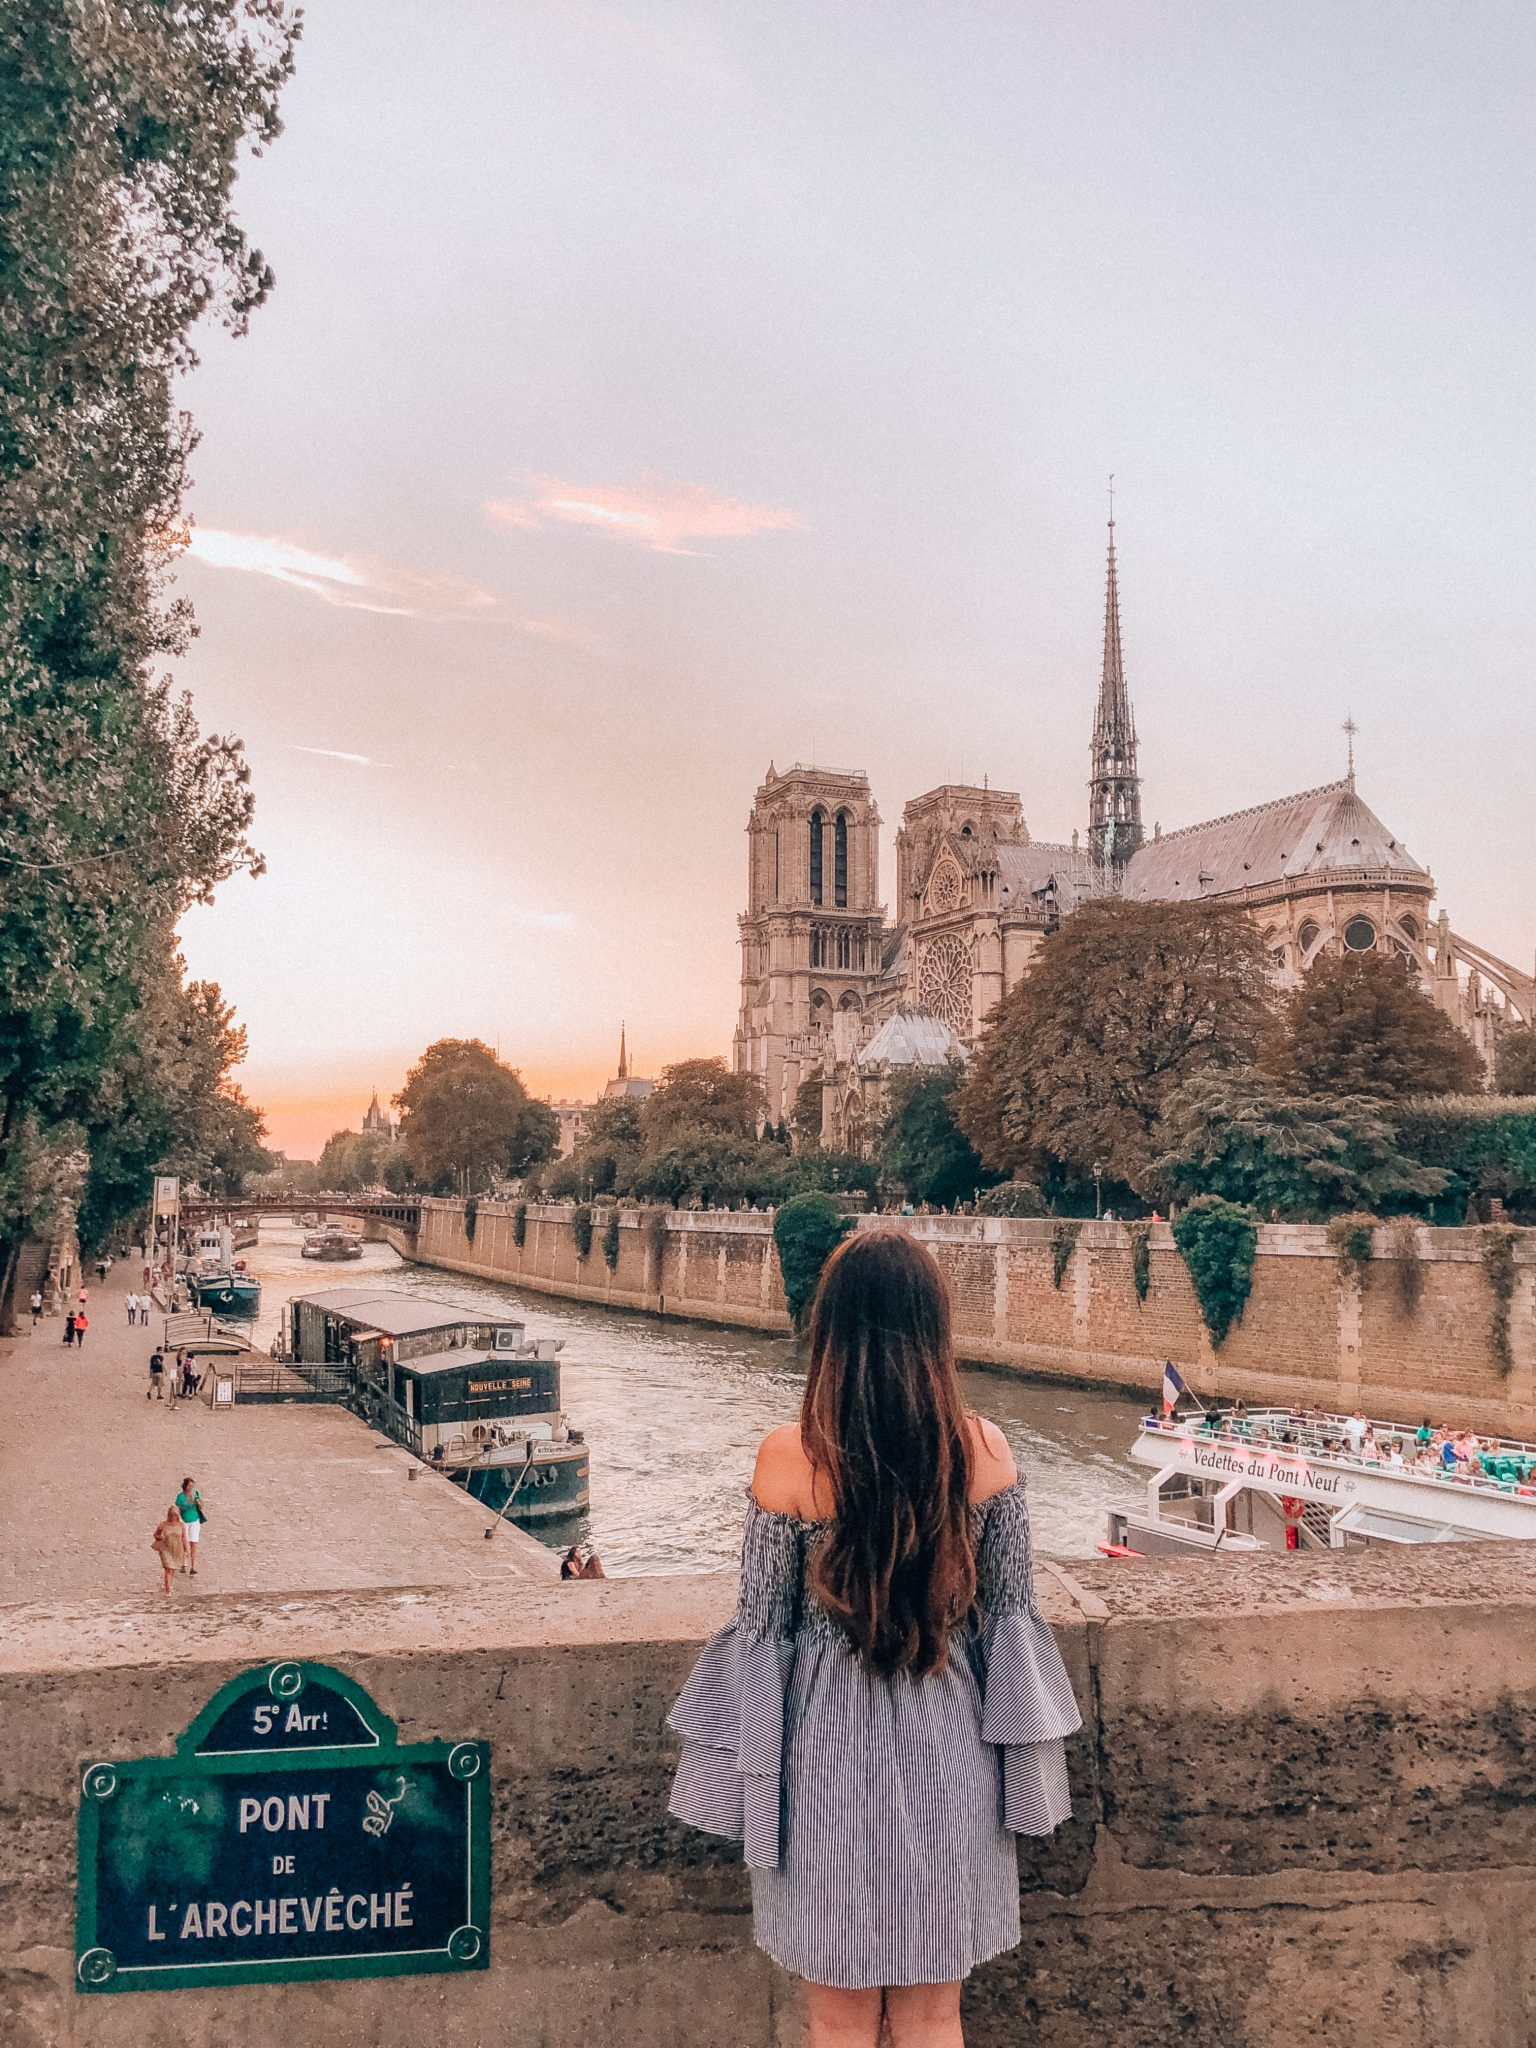 12 Best Photo Spots in Paris For Epic Instagram Shots - Notre Dame De Paris